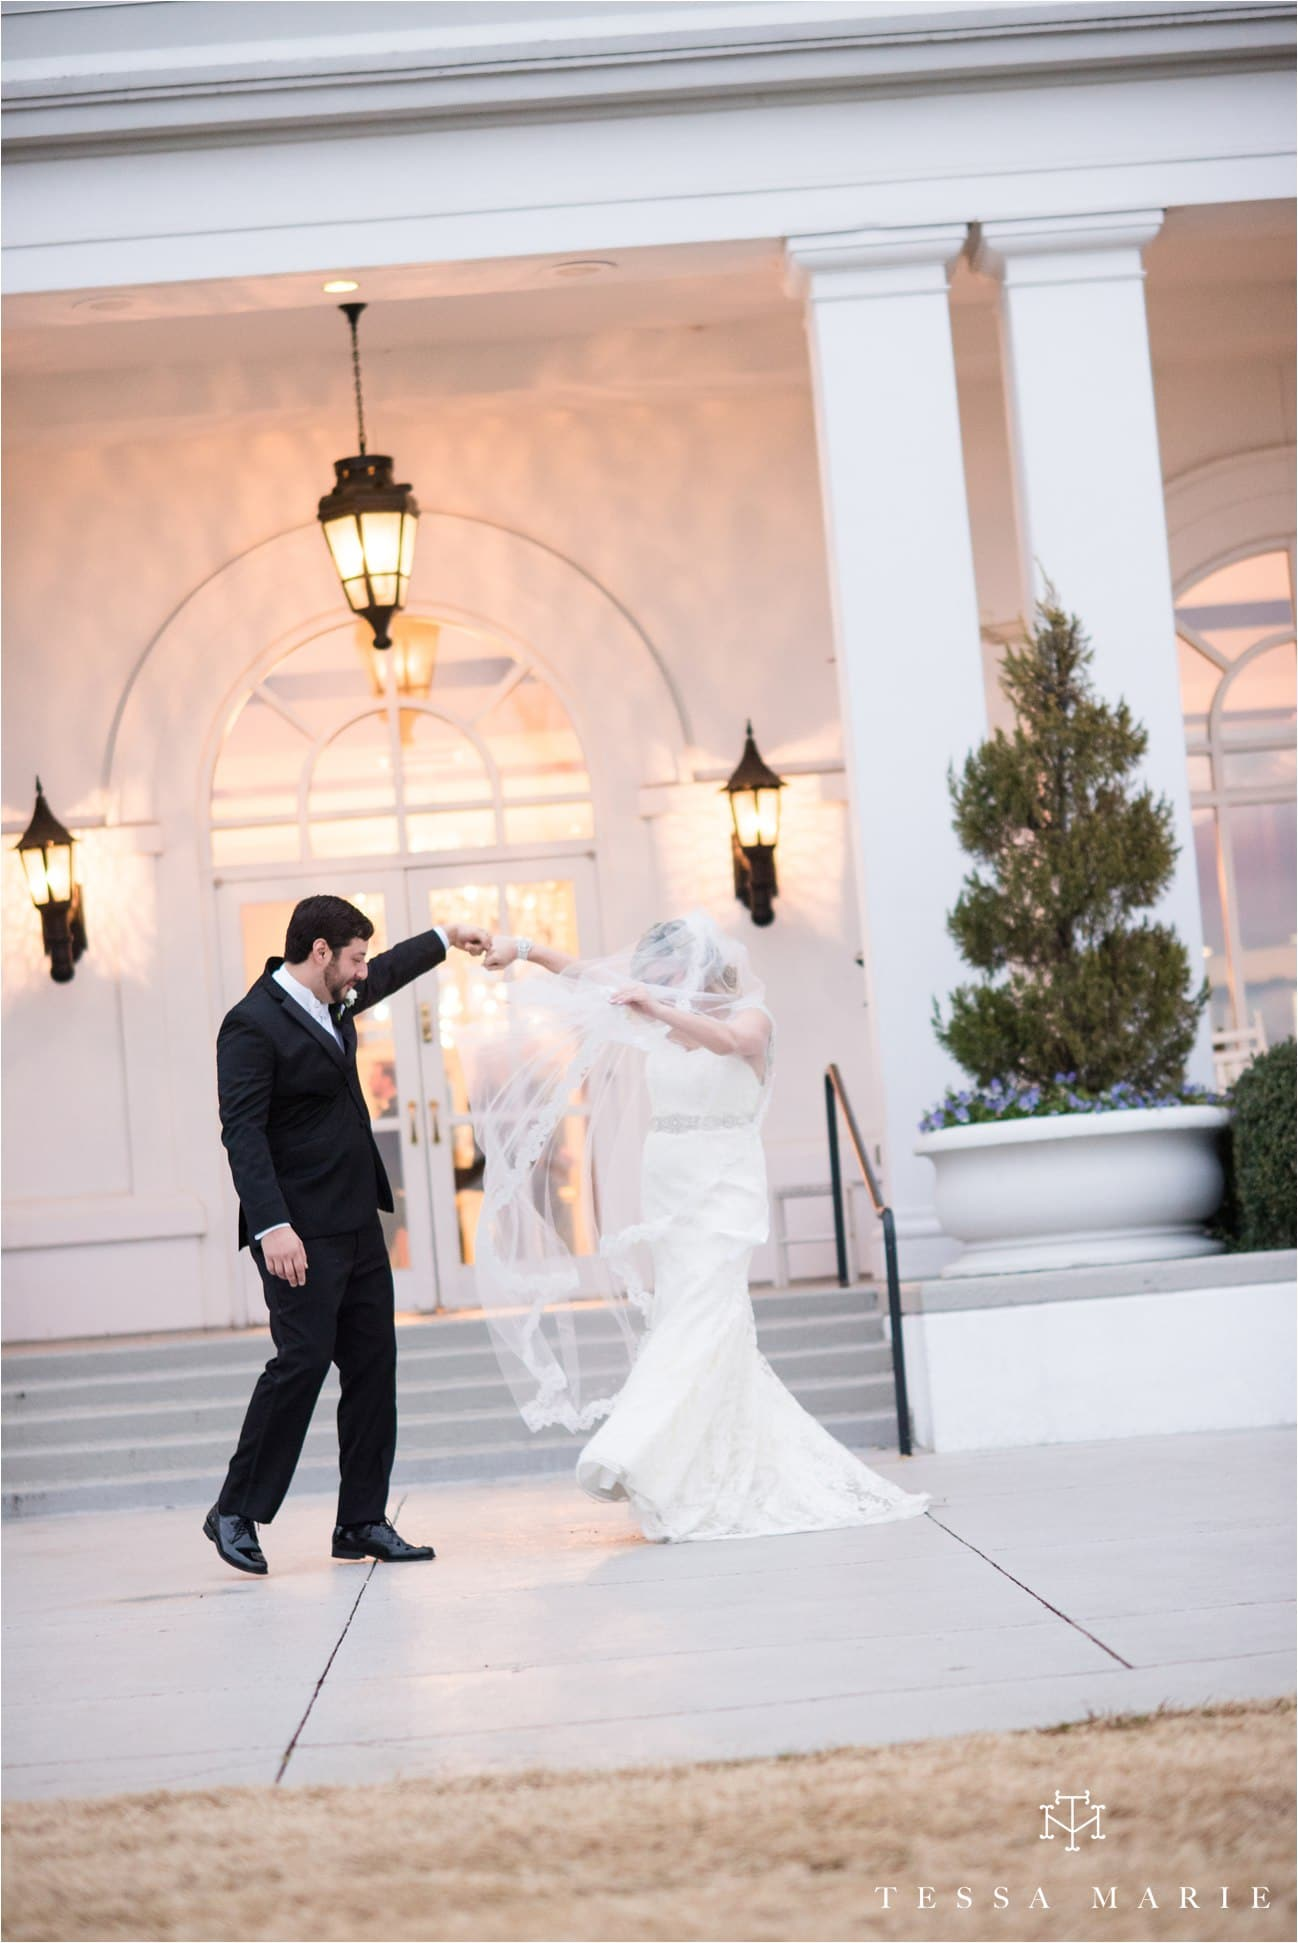 tessa_marie_brickyard_marietta_new_years_wedding_pictures_candid_emotional_wedding_portraits_0059